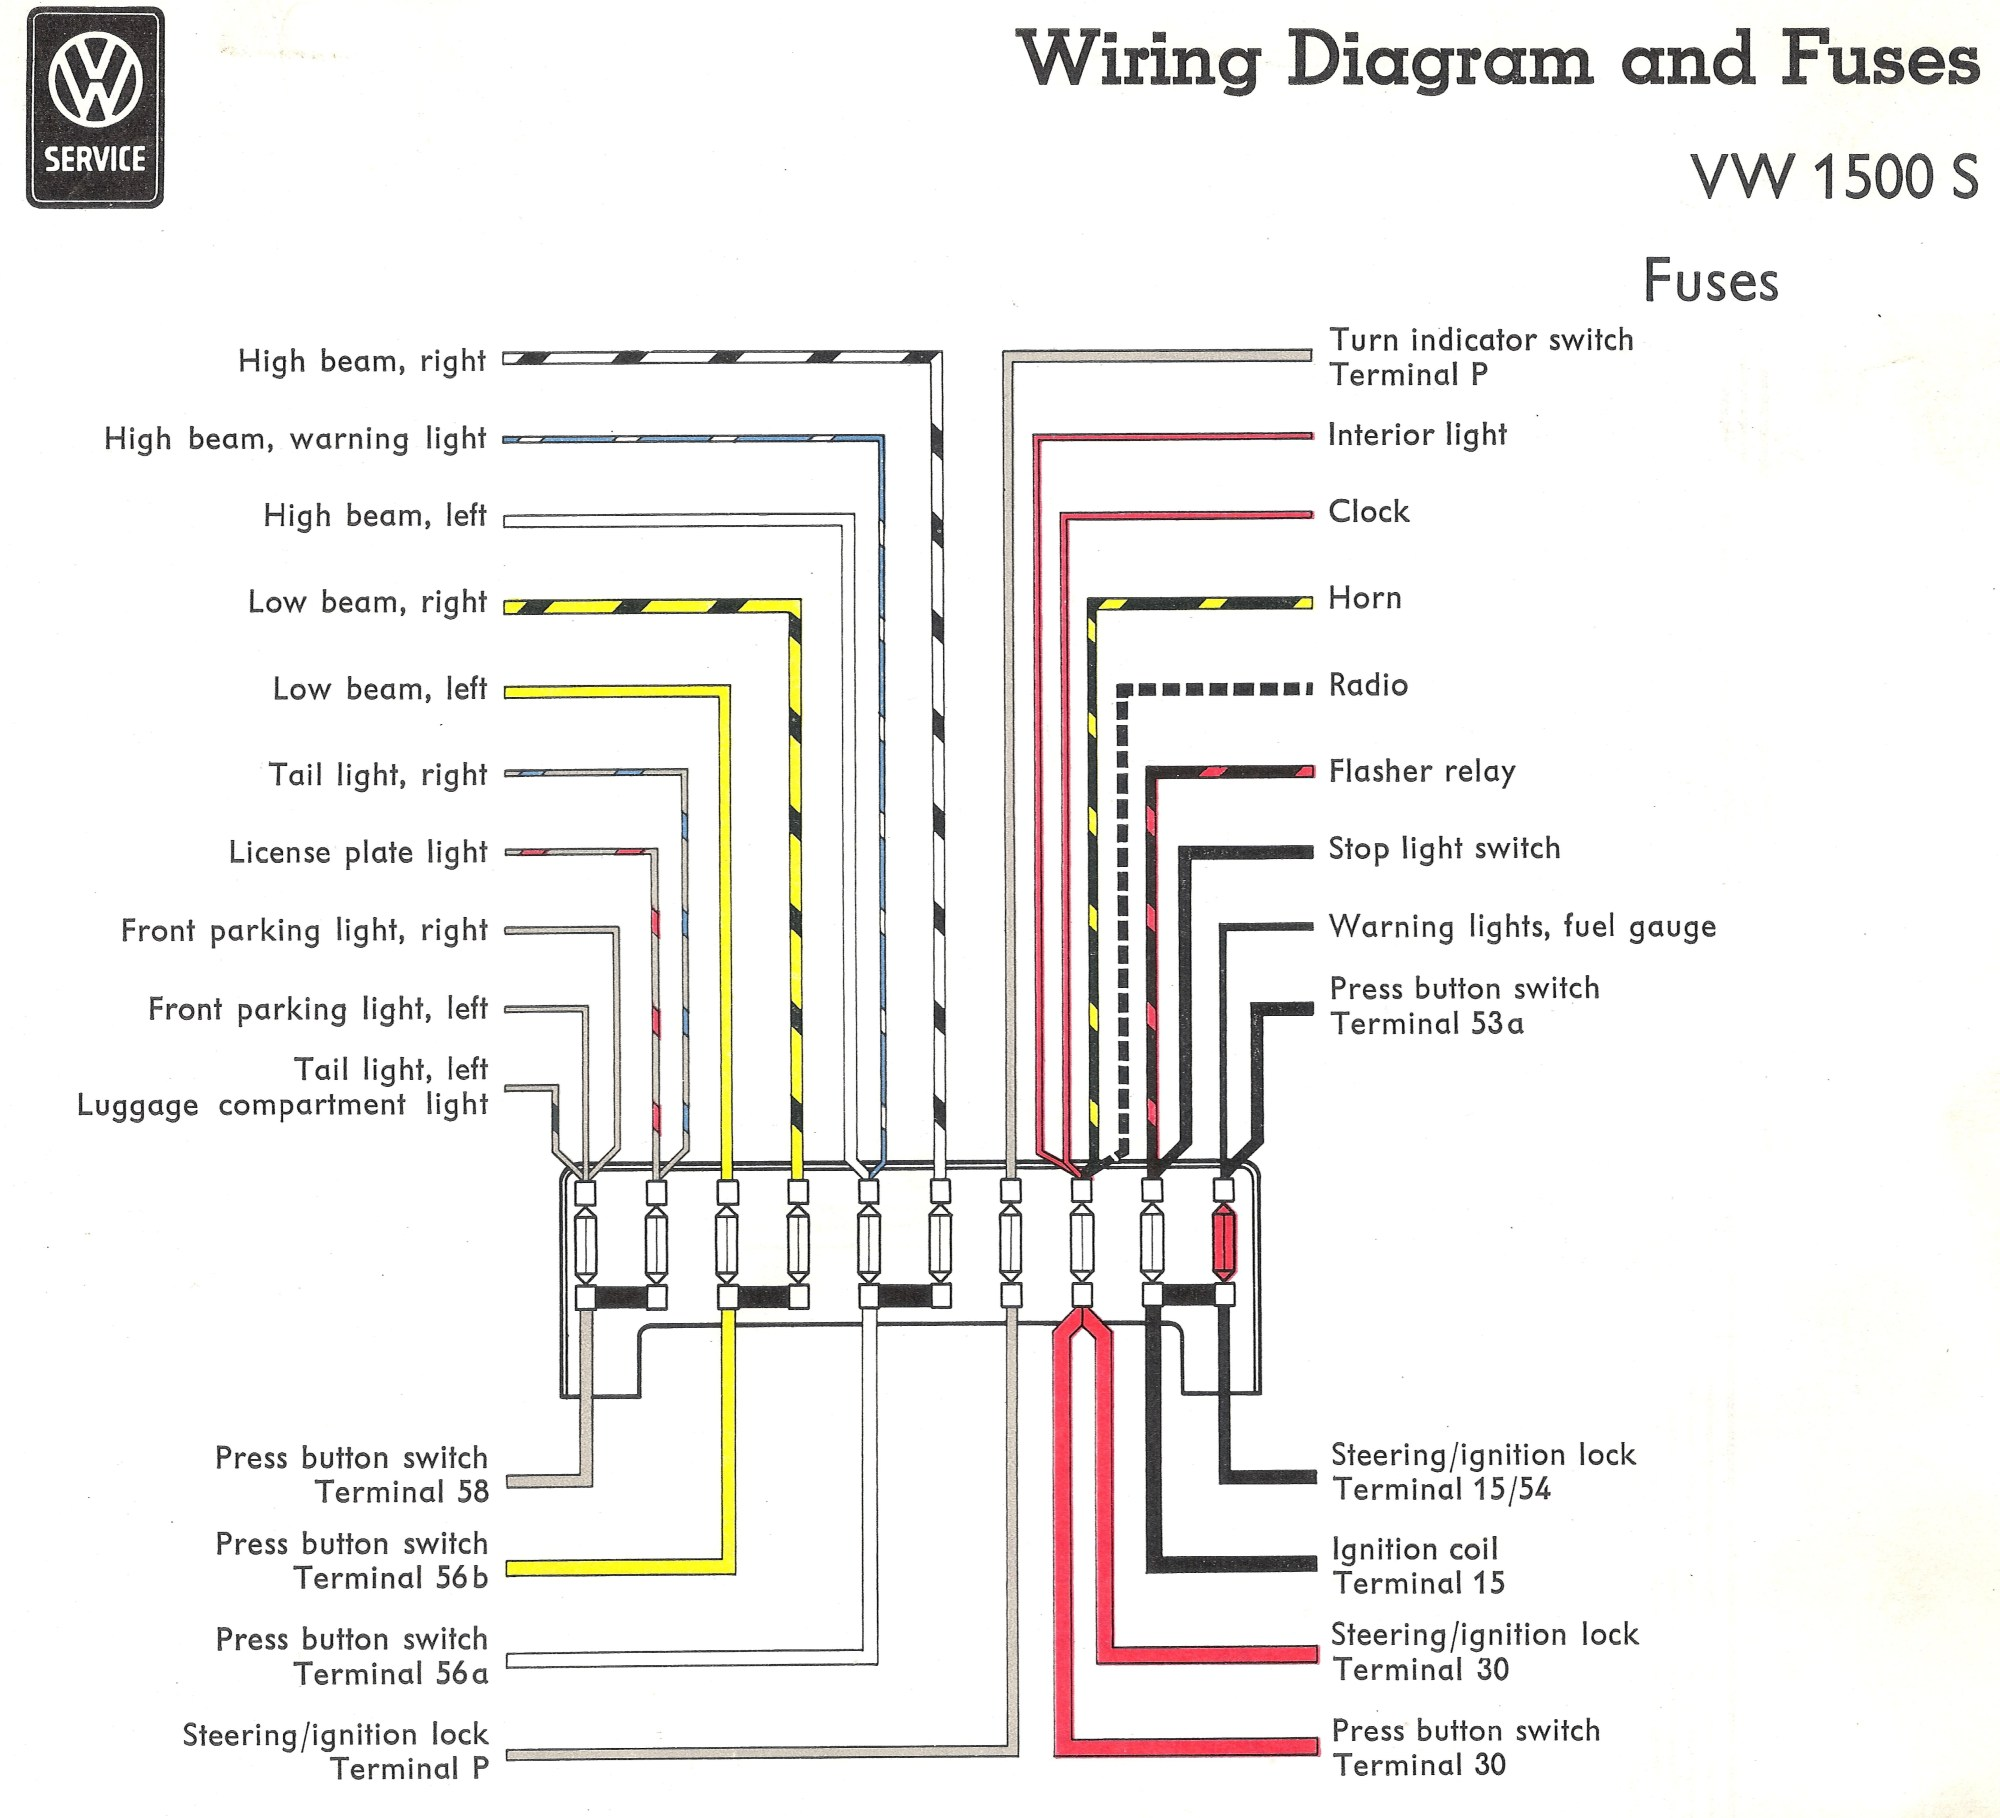 hight resolution of vw jetta fuse box diagram 1967 vw beetle wiring diagram 73 vw beetle 2008 vw gti fuse box 1973 vw fuse box